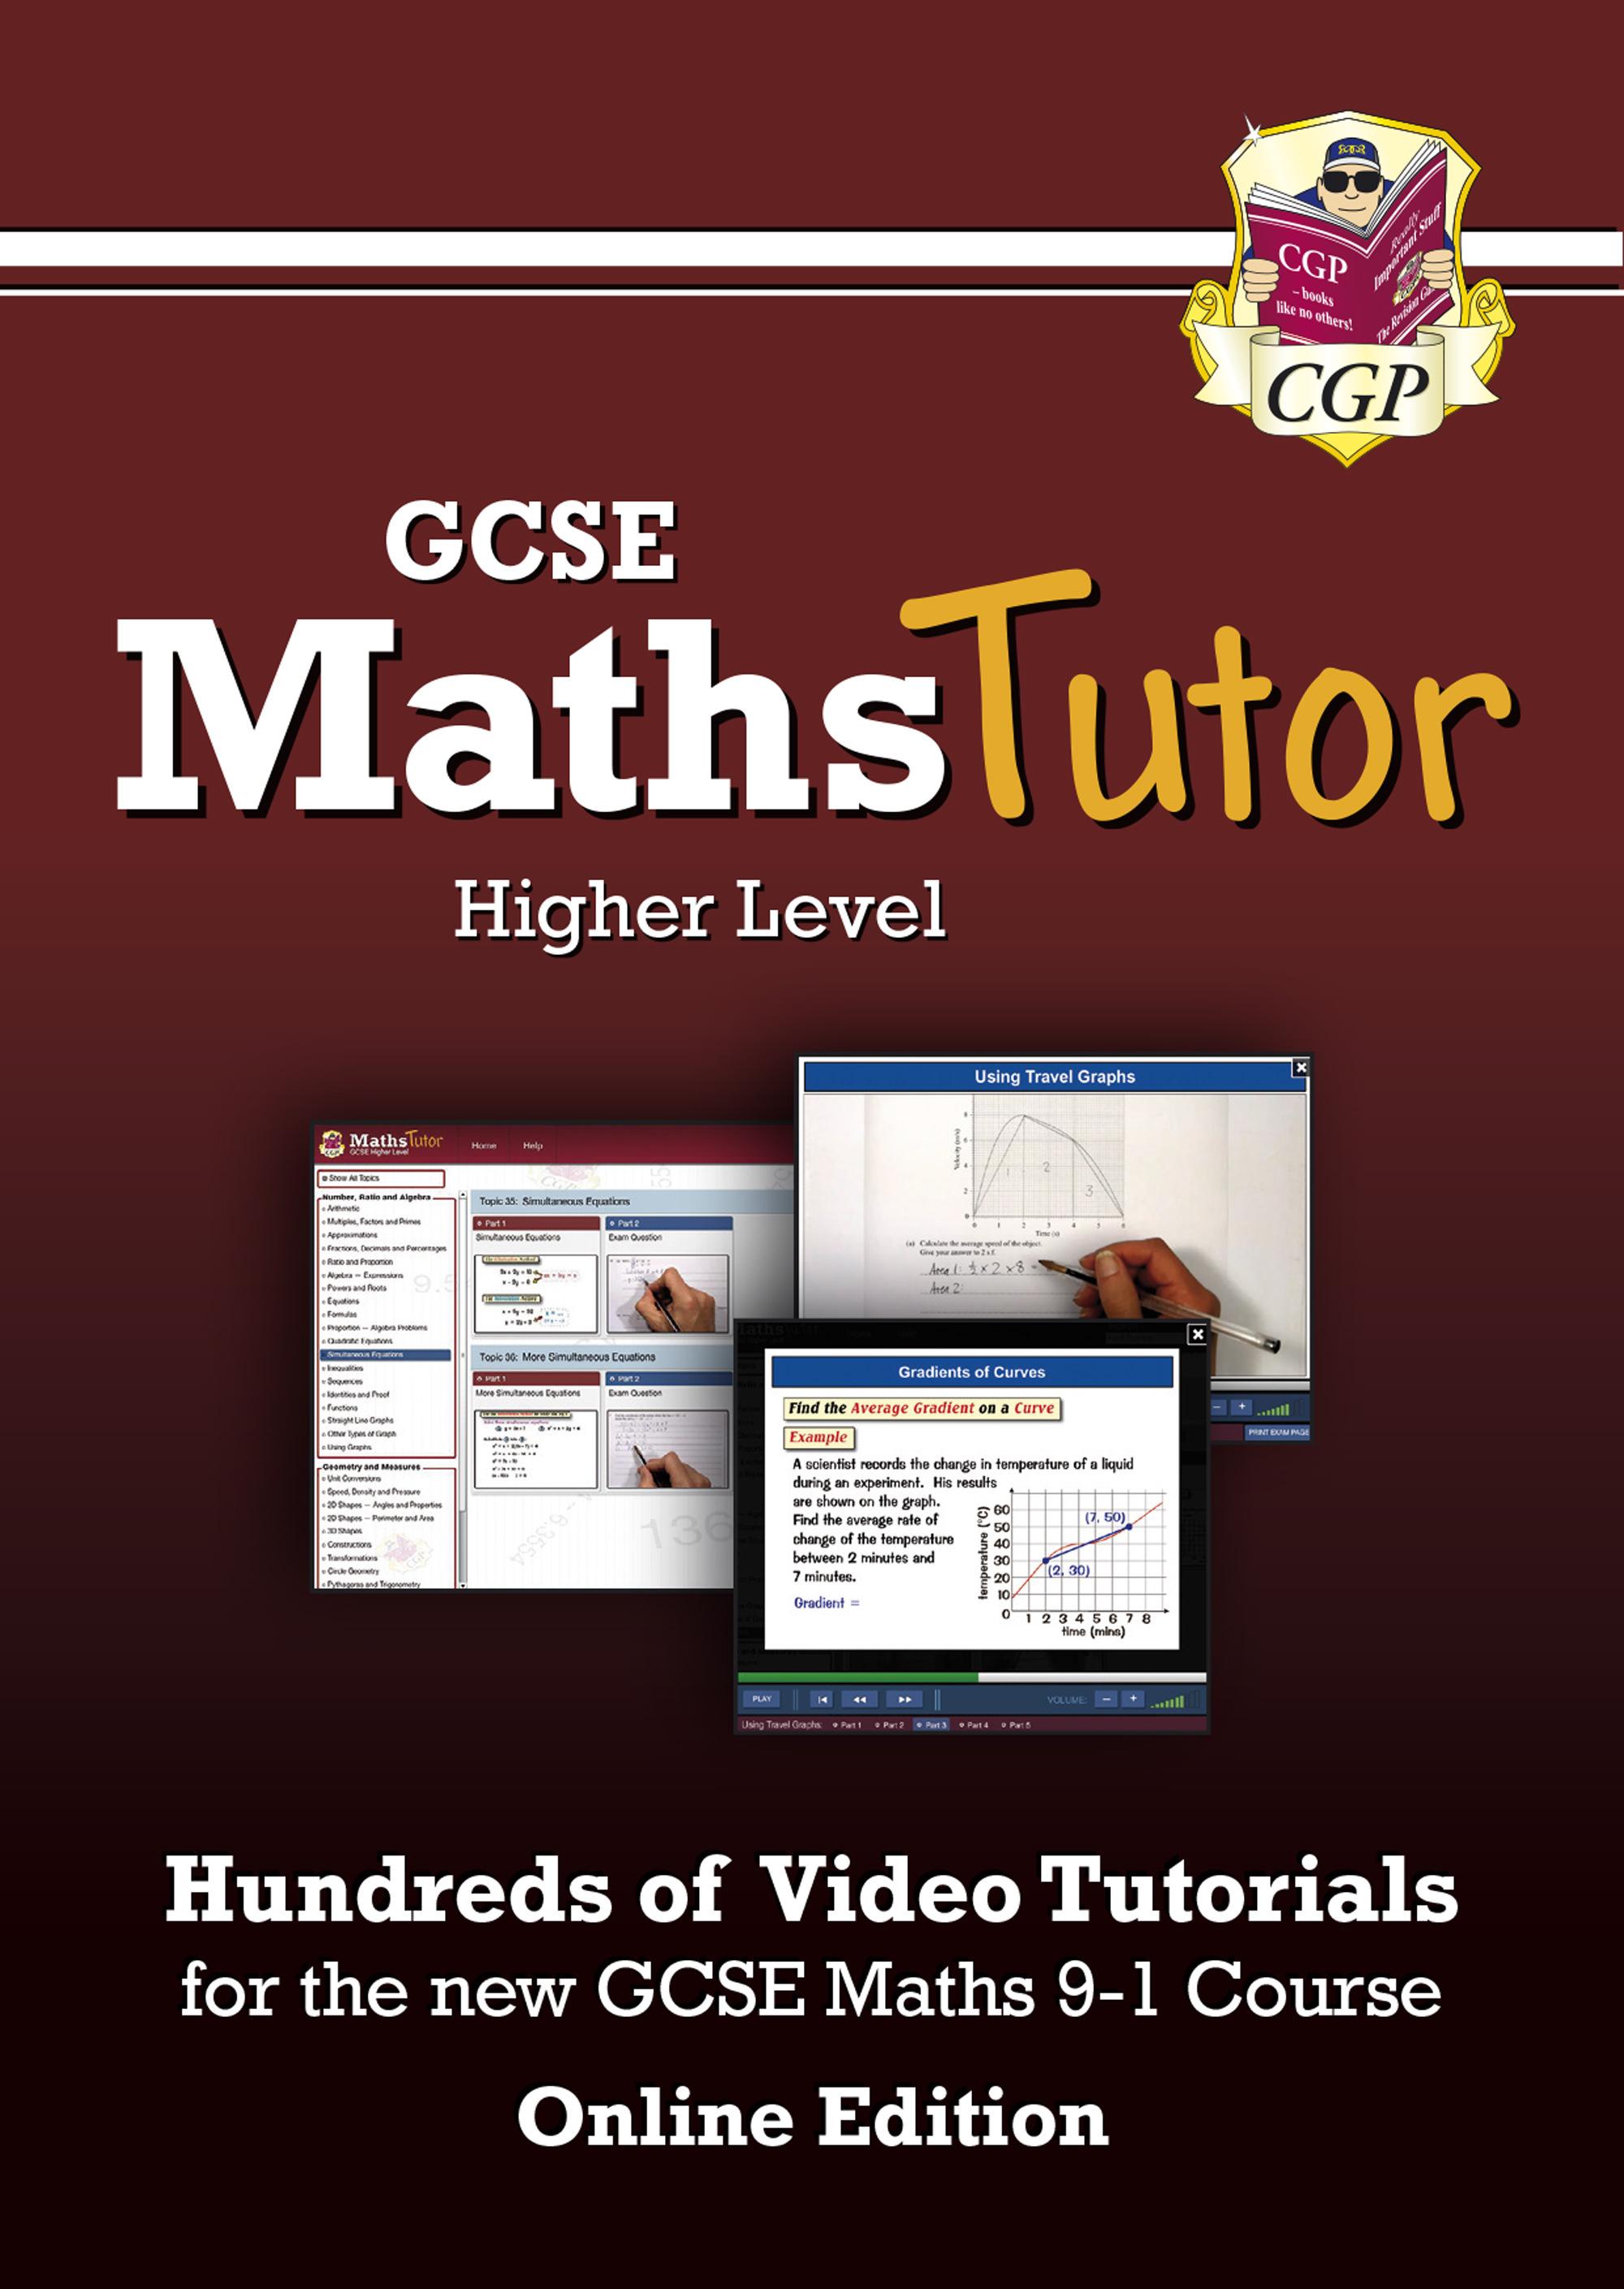 MHVC43D - MathsTutor: GCSE Maths Video Tutorials (Grade 9-1 Course) Higher - Online Edition